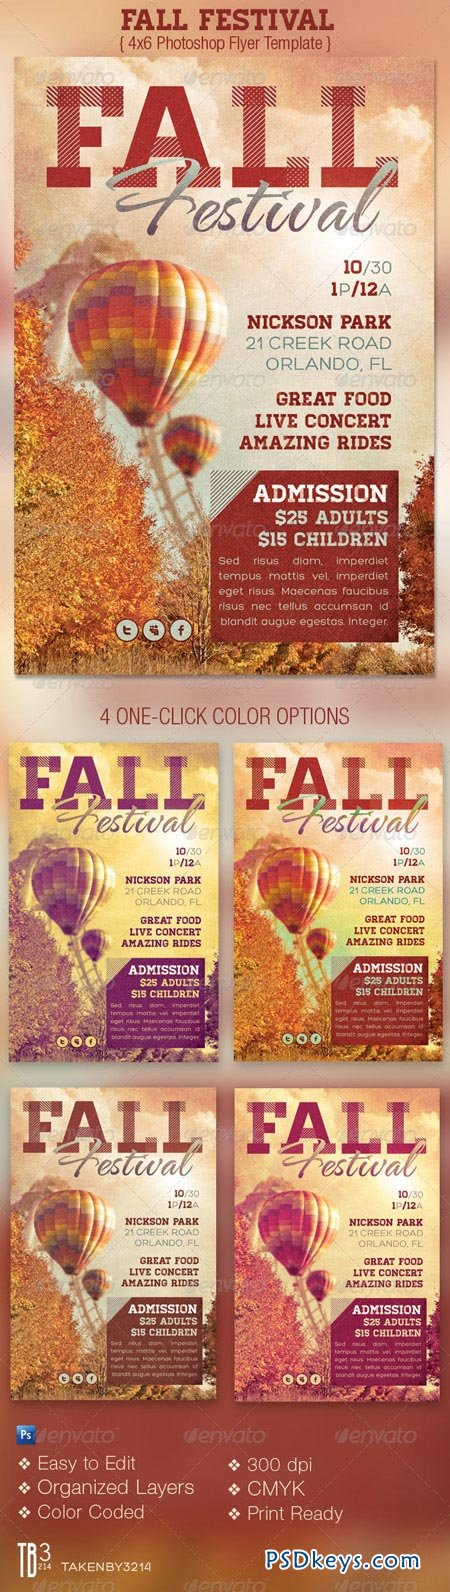 Fall Festival Event Flyer Template 3201047